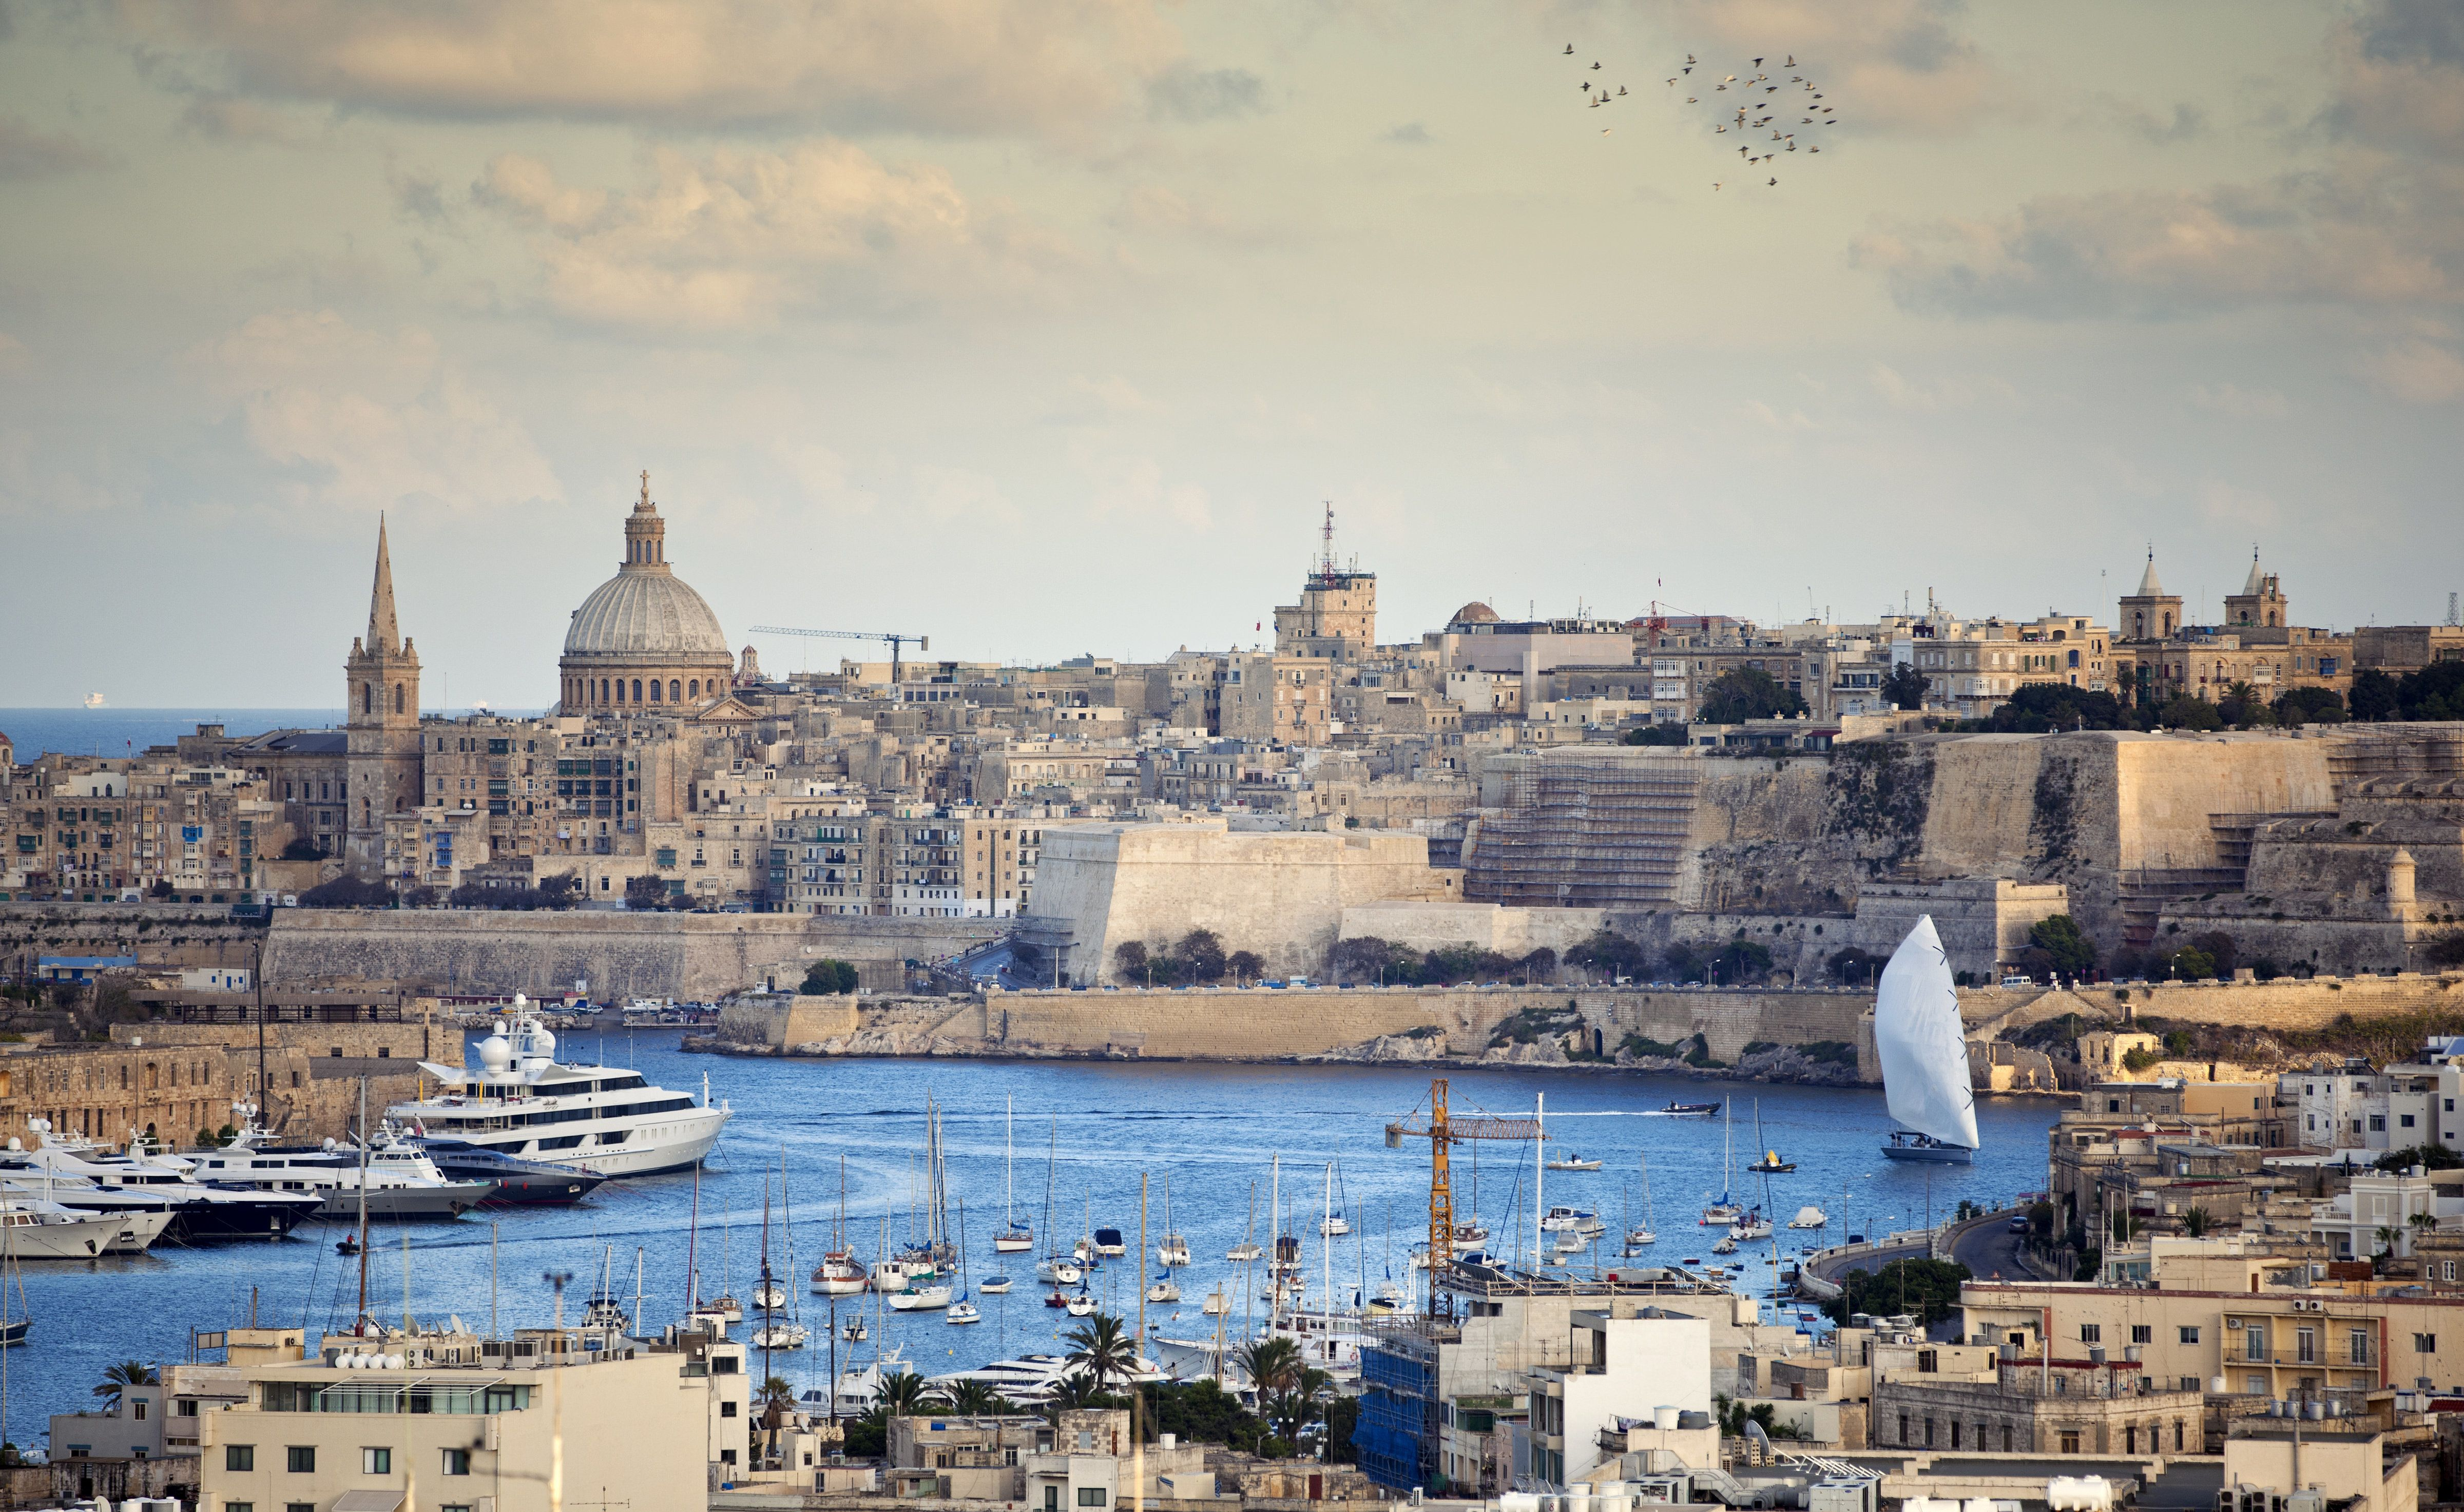 The capital city of Malta, Valletta as seen from a distance.